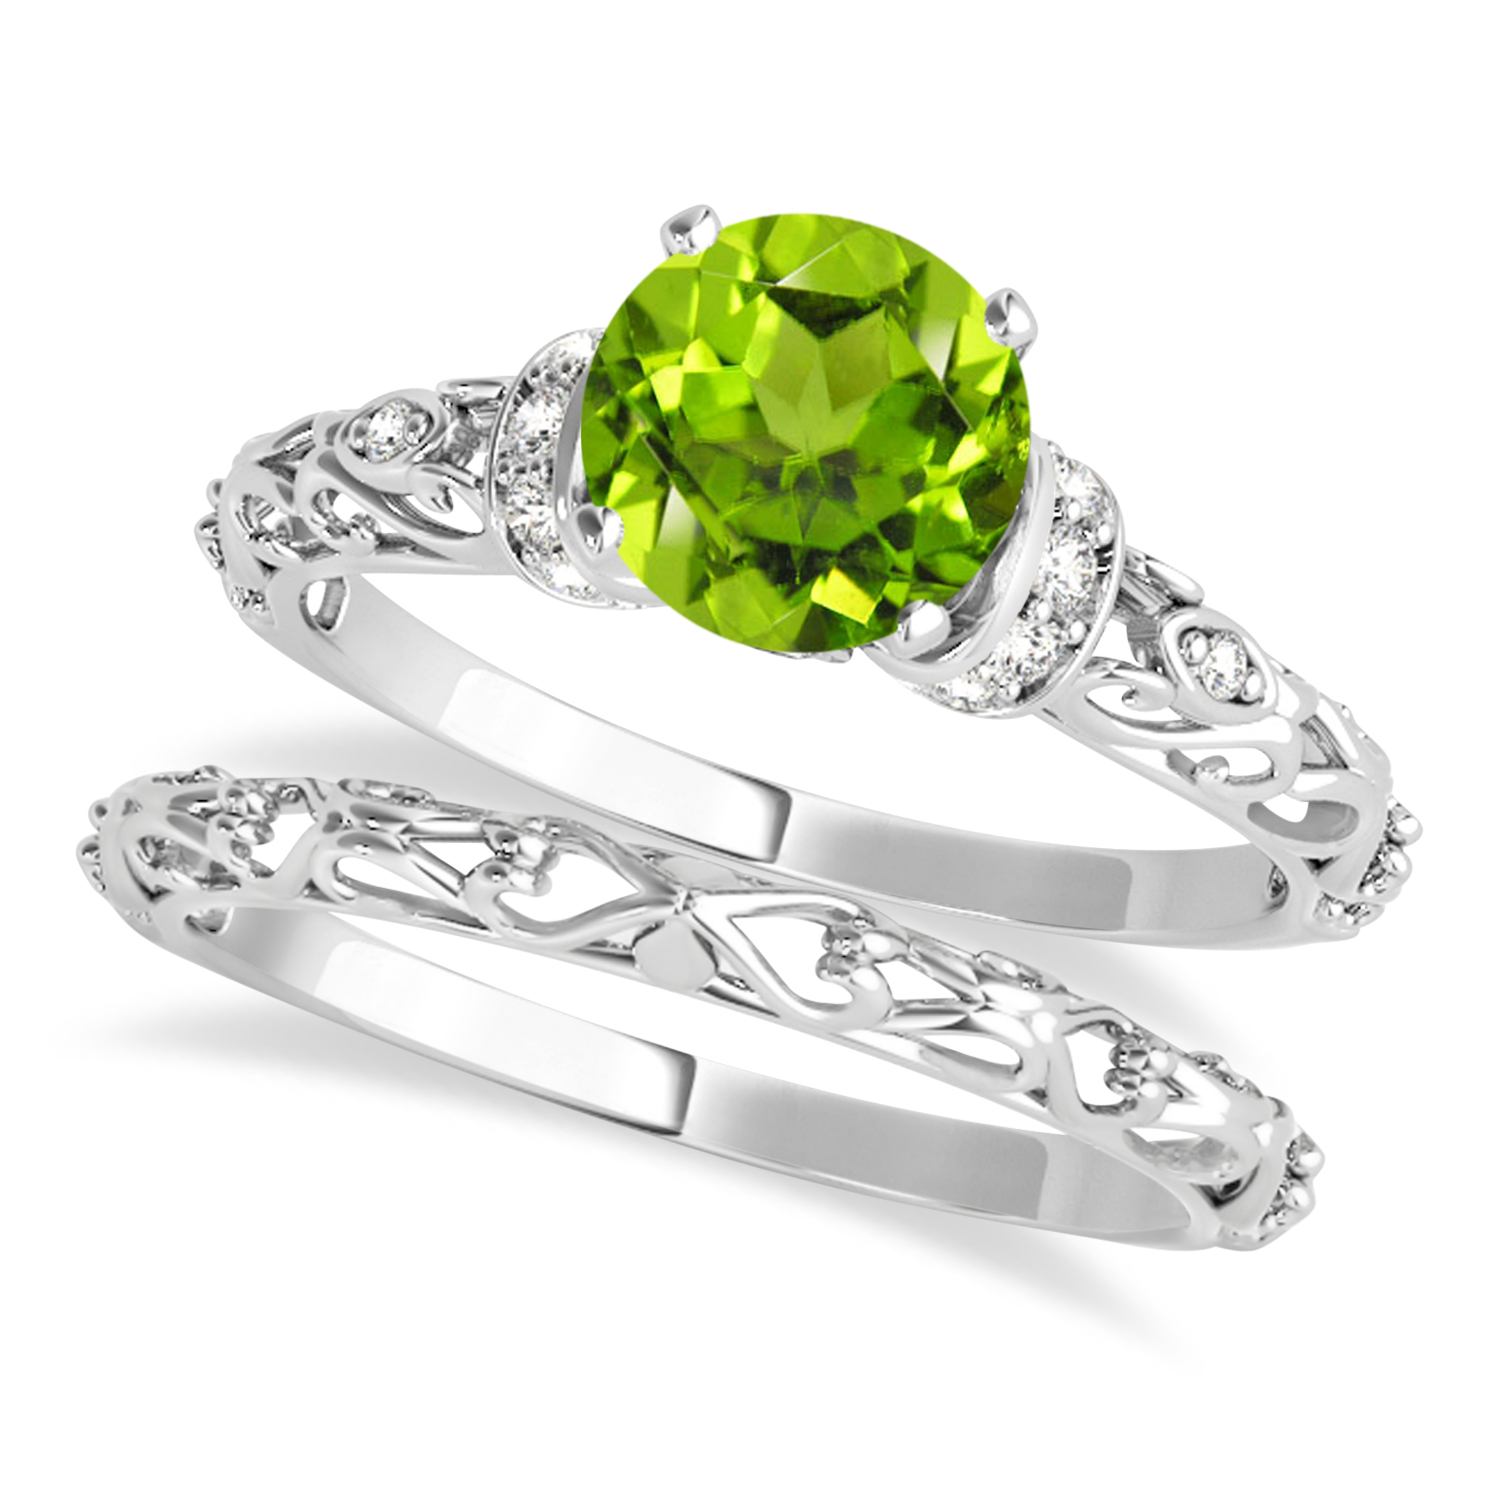 Peridot & Diamond Antique Style Bridal Set 14k White Gold (0.87ct)